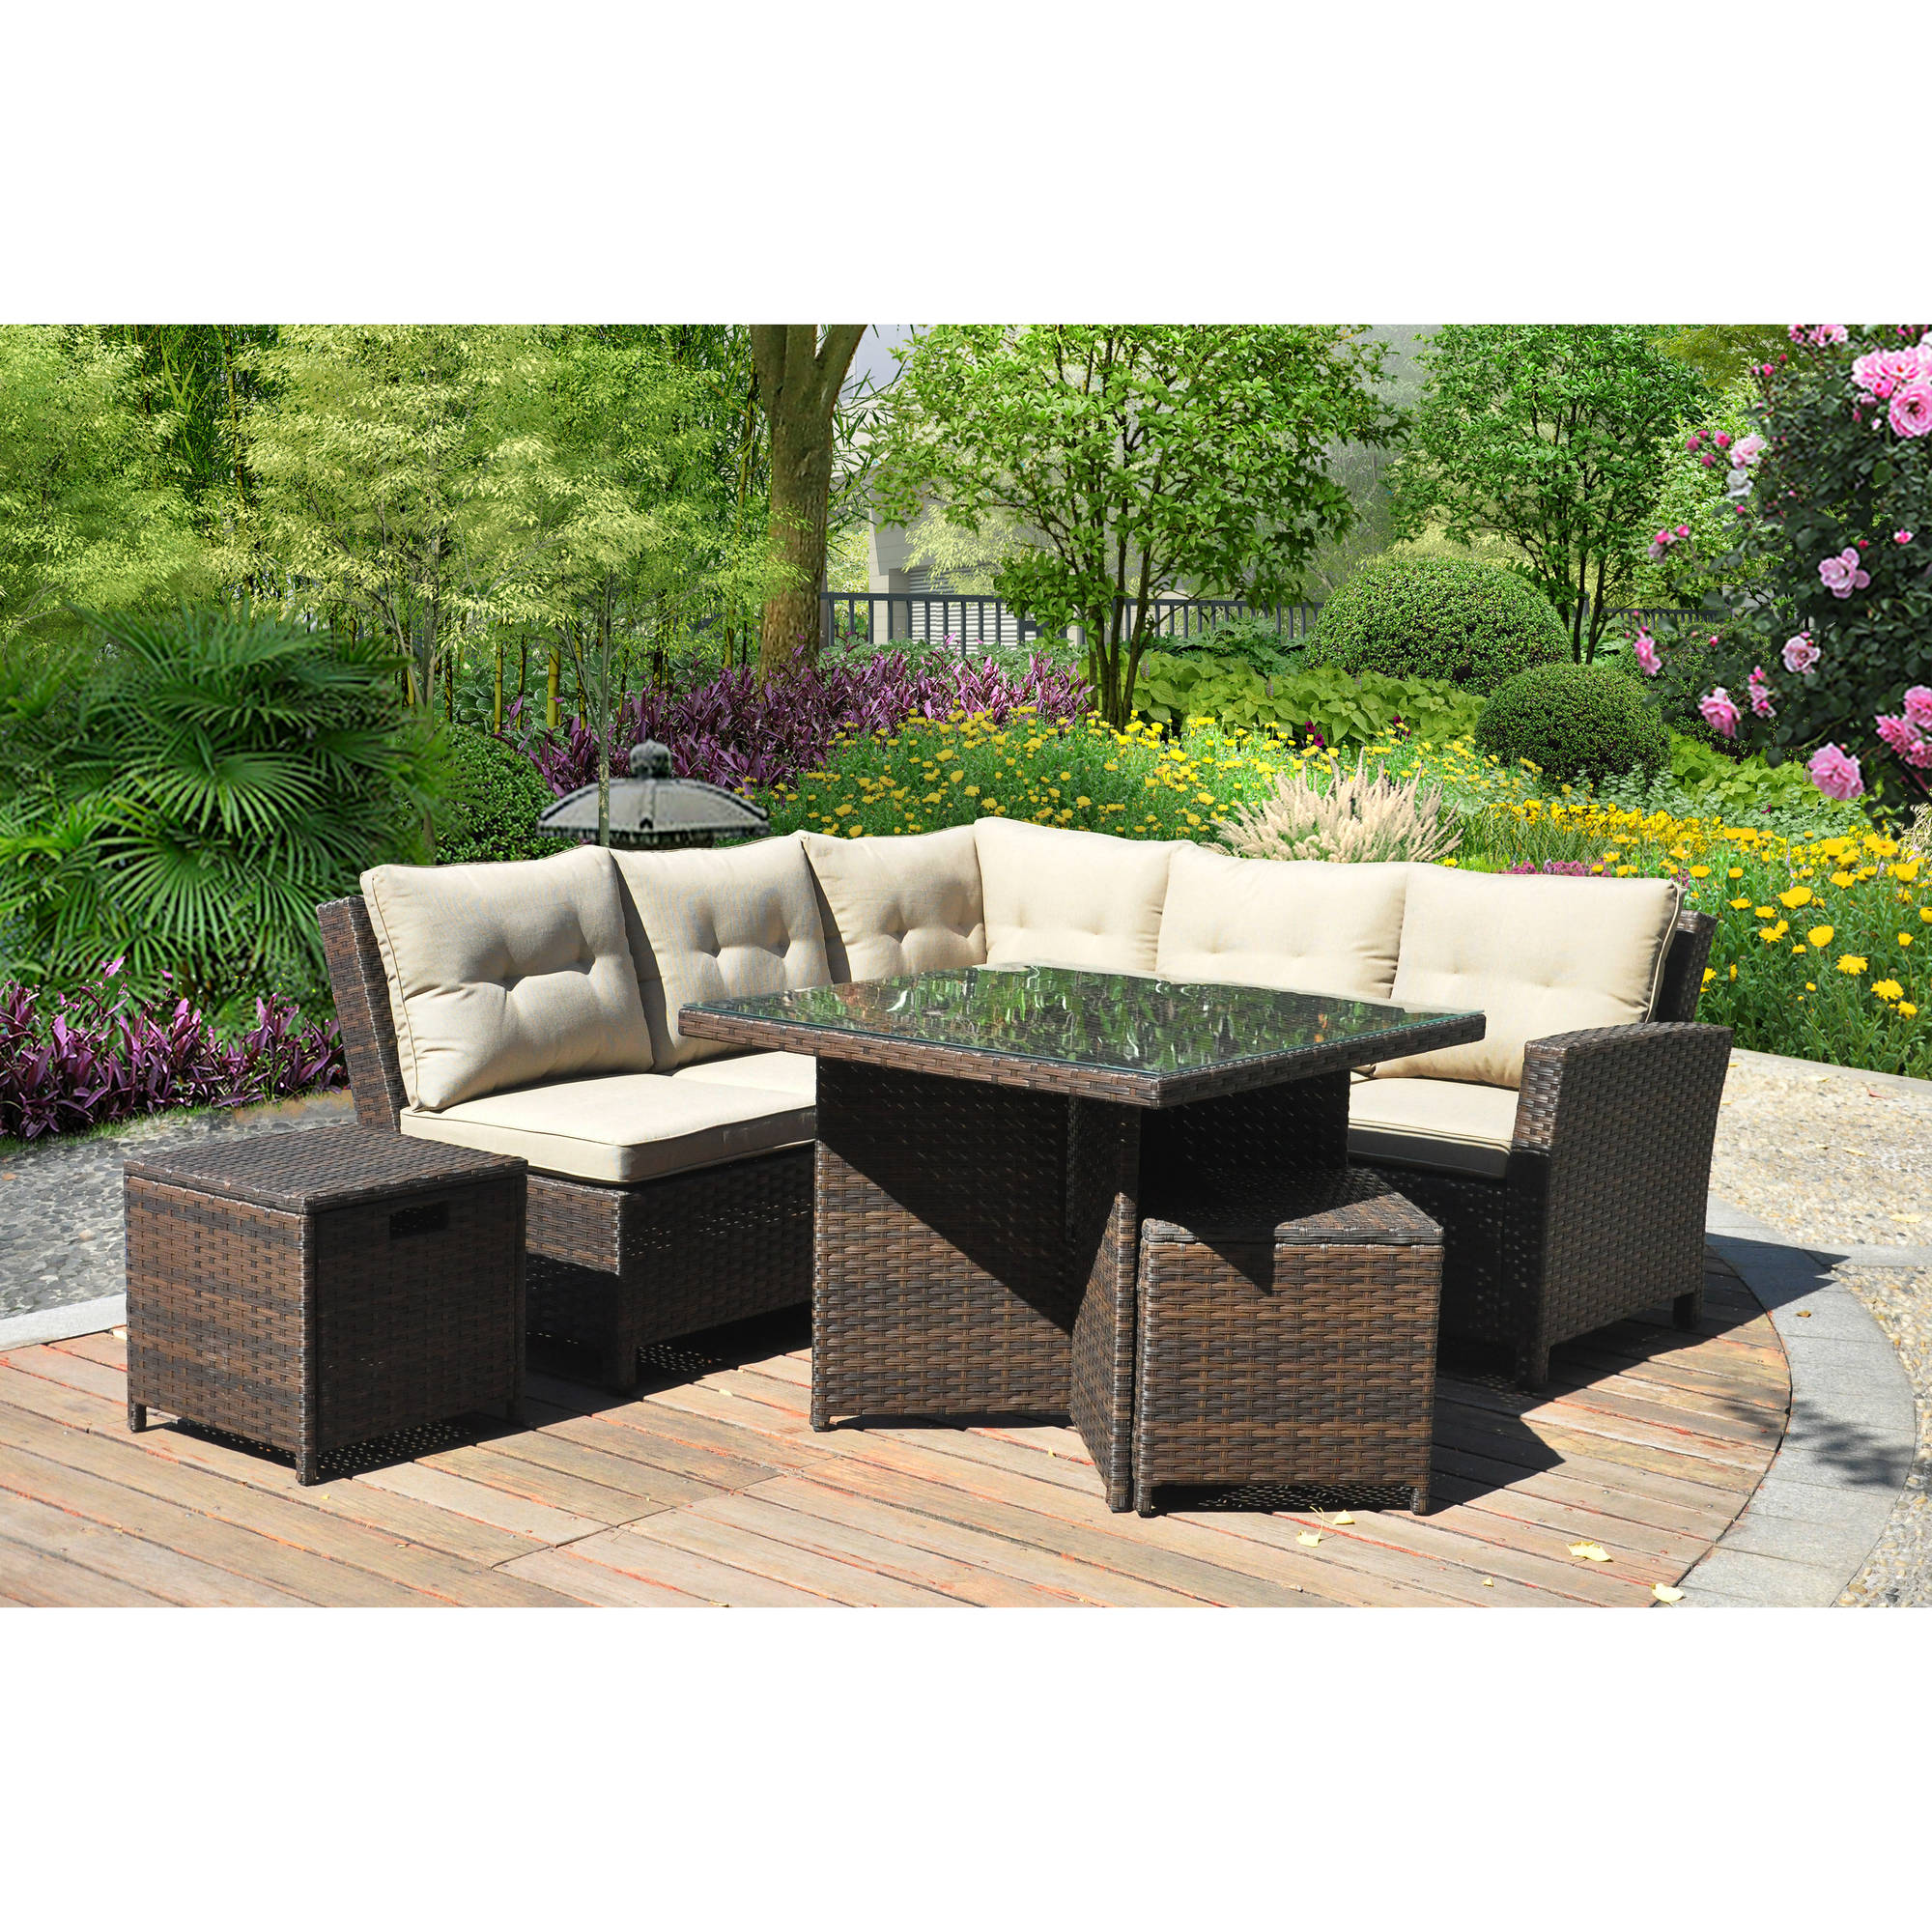 Mainstays Ragan Meadow II 7Piece Outdoor Sectional Sofa Seats 5